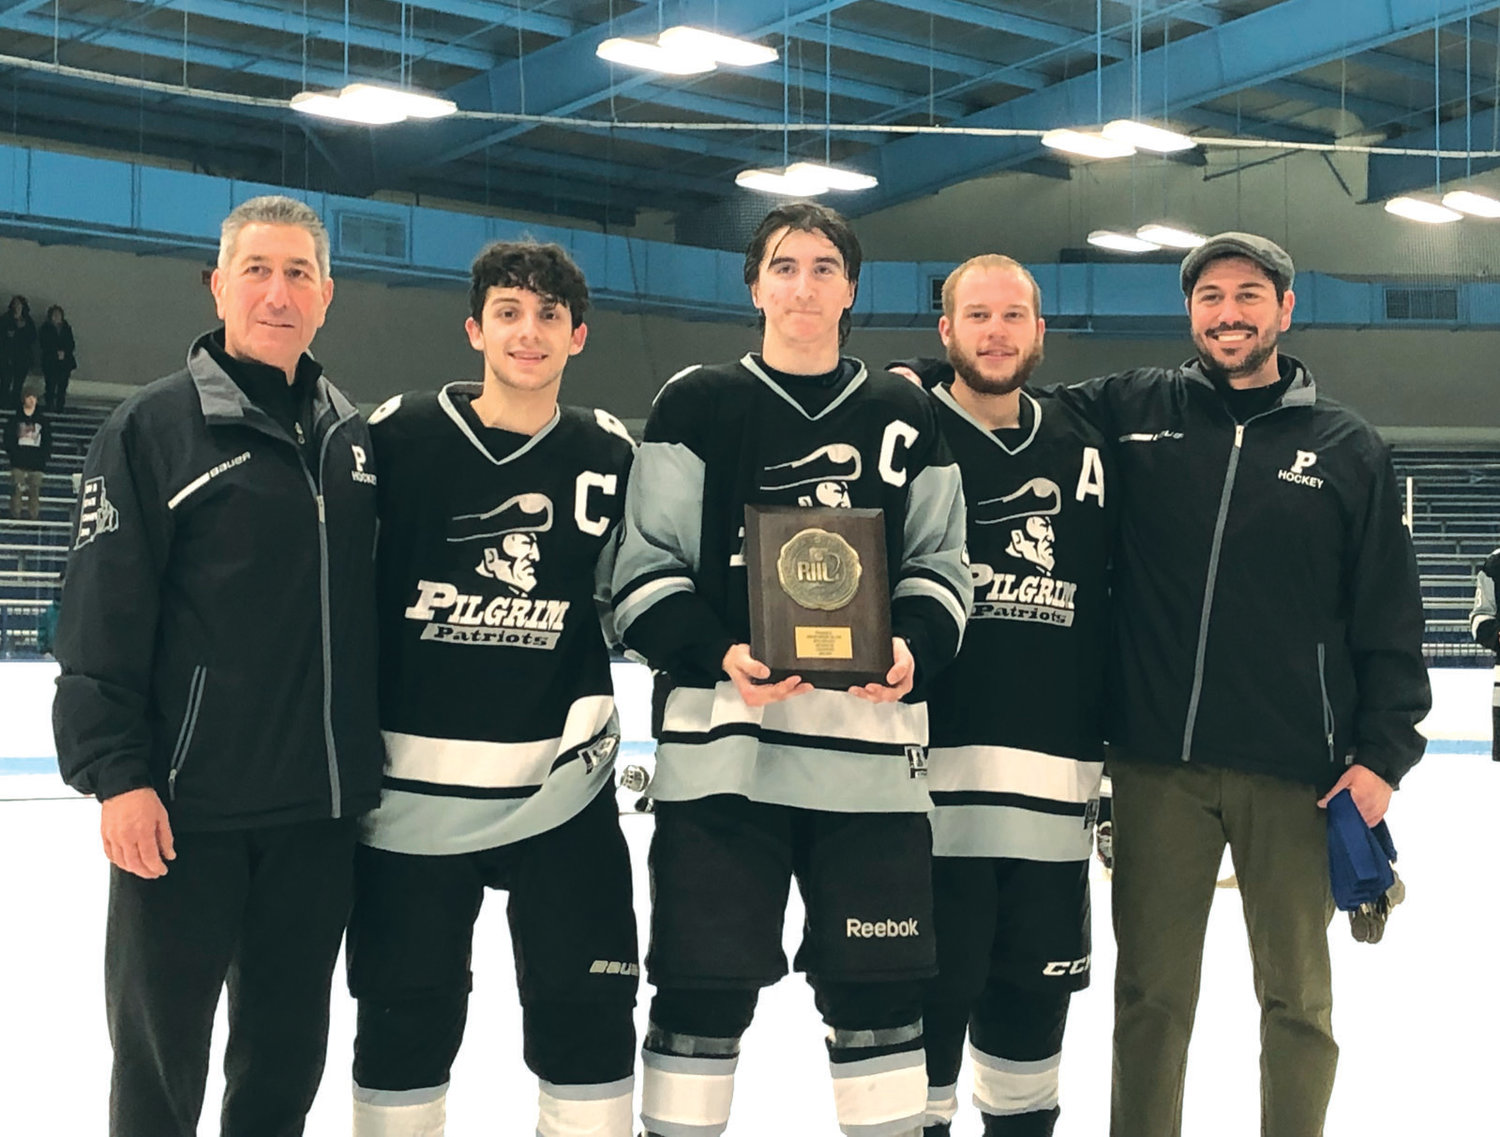 LEADERS OF THE PACK: Pilgrim senior captains Matt Pacheco, Jack Clements and Ryan Pietros accept the Rhode Island Interscholastic League Division III Championship plaque presented to them after topping West Warwick/ Exeter-West Greenwich on Saturday at the Boss Arena at URI. Also pictured are coaches Mike Boyajian Jr. (far right) and Mike Boyajian Sr. (far left)